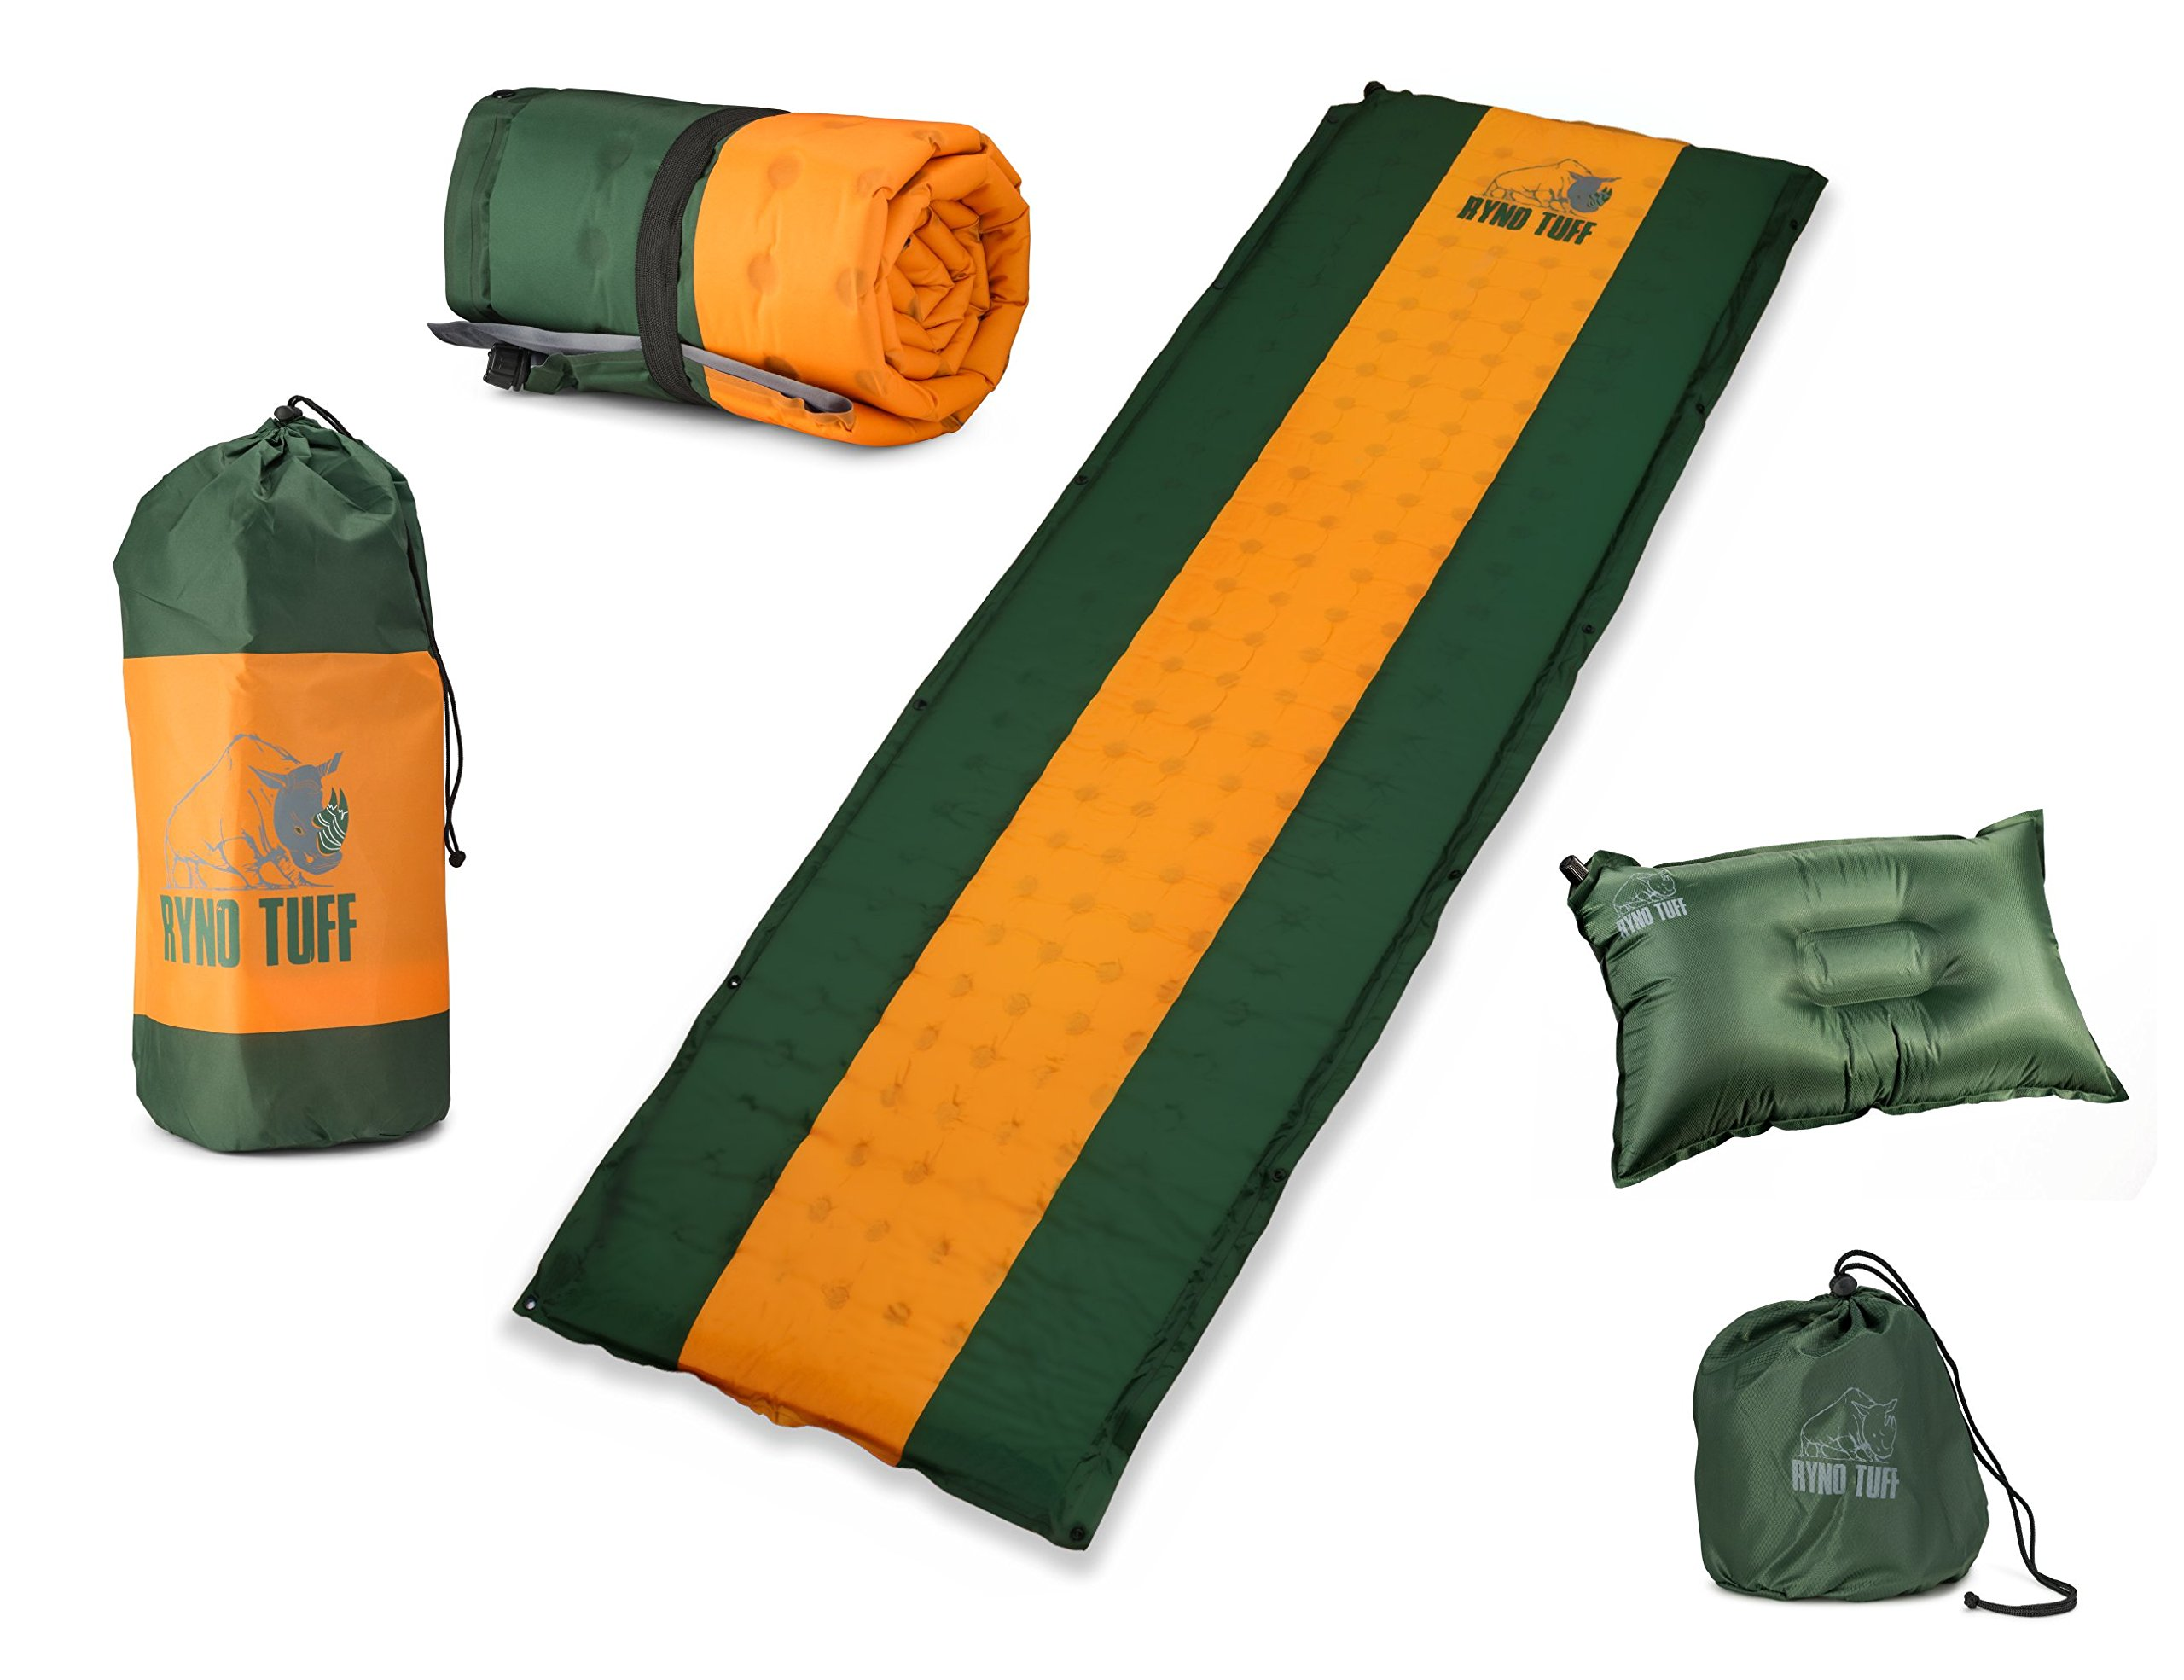 Ryno Tuff Sleeping Pad Set, Self-Inflating Camping Mattress and Bonus Traveling Pillow Included, The Mat Is Large, Wide and Insulated Yet Compact When Folded, A Must For Camping, Hiking or Backpacking